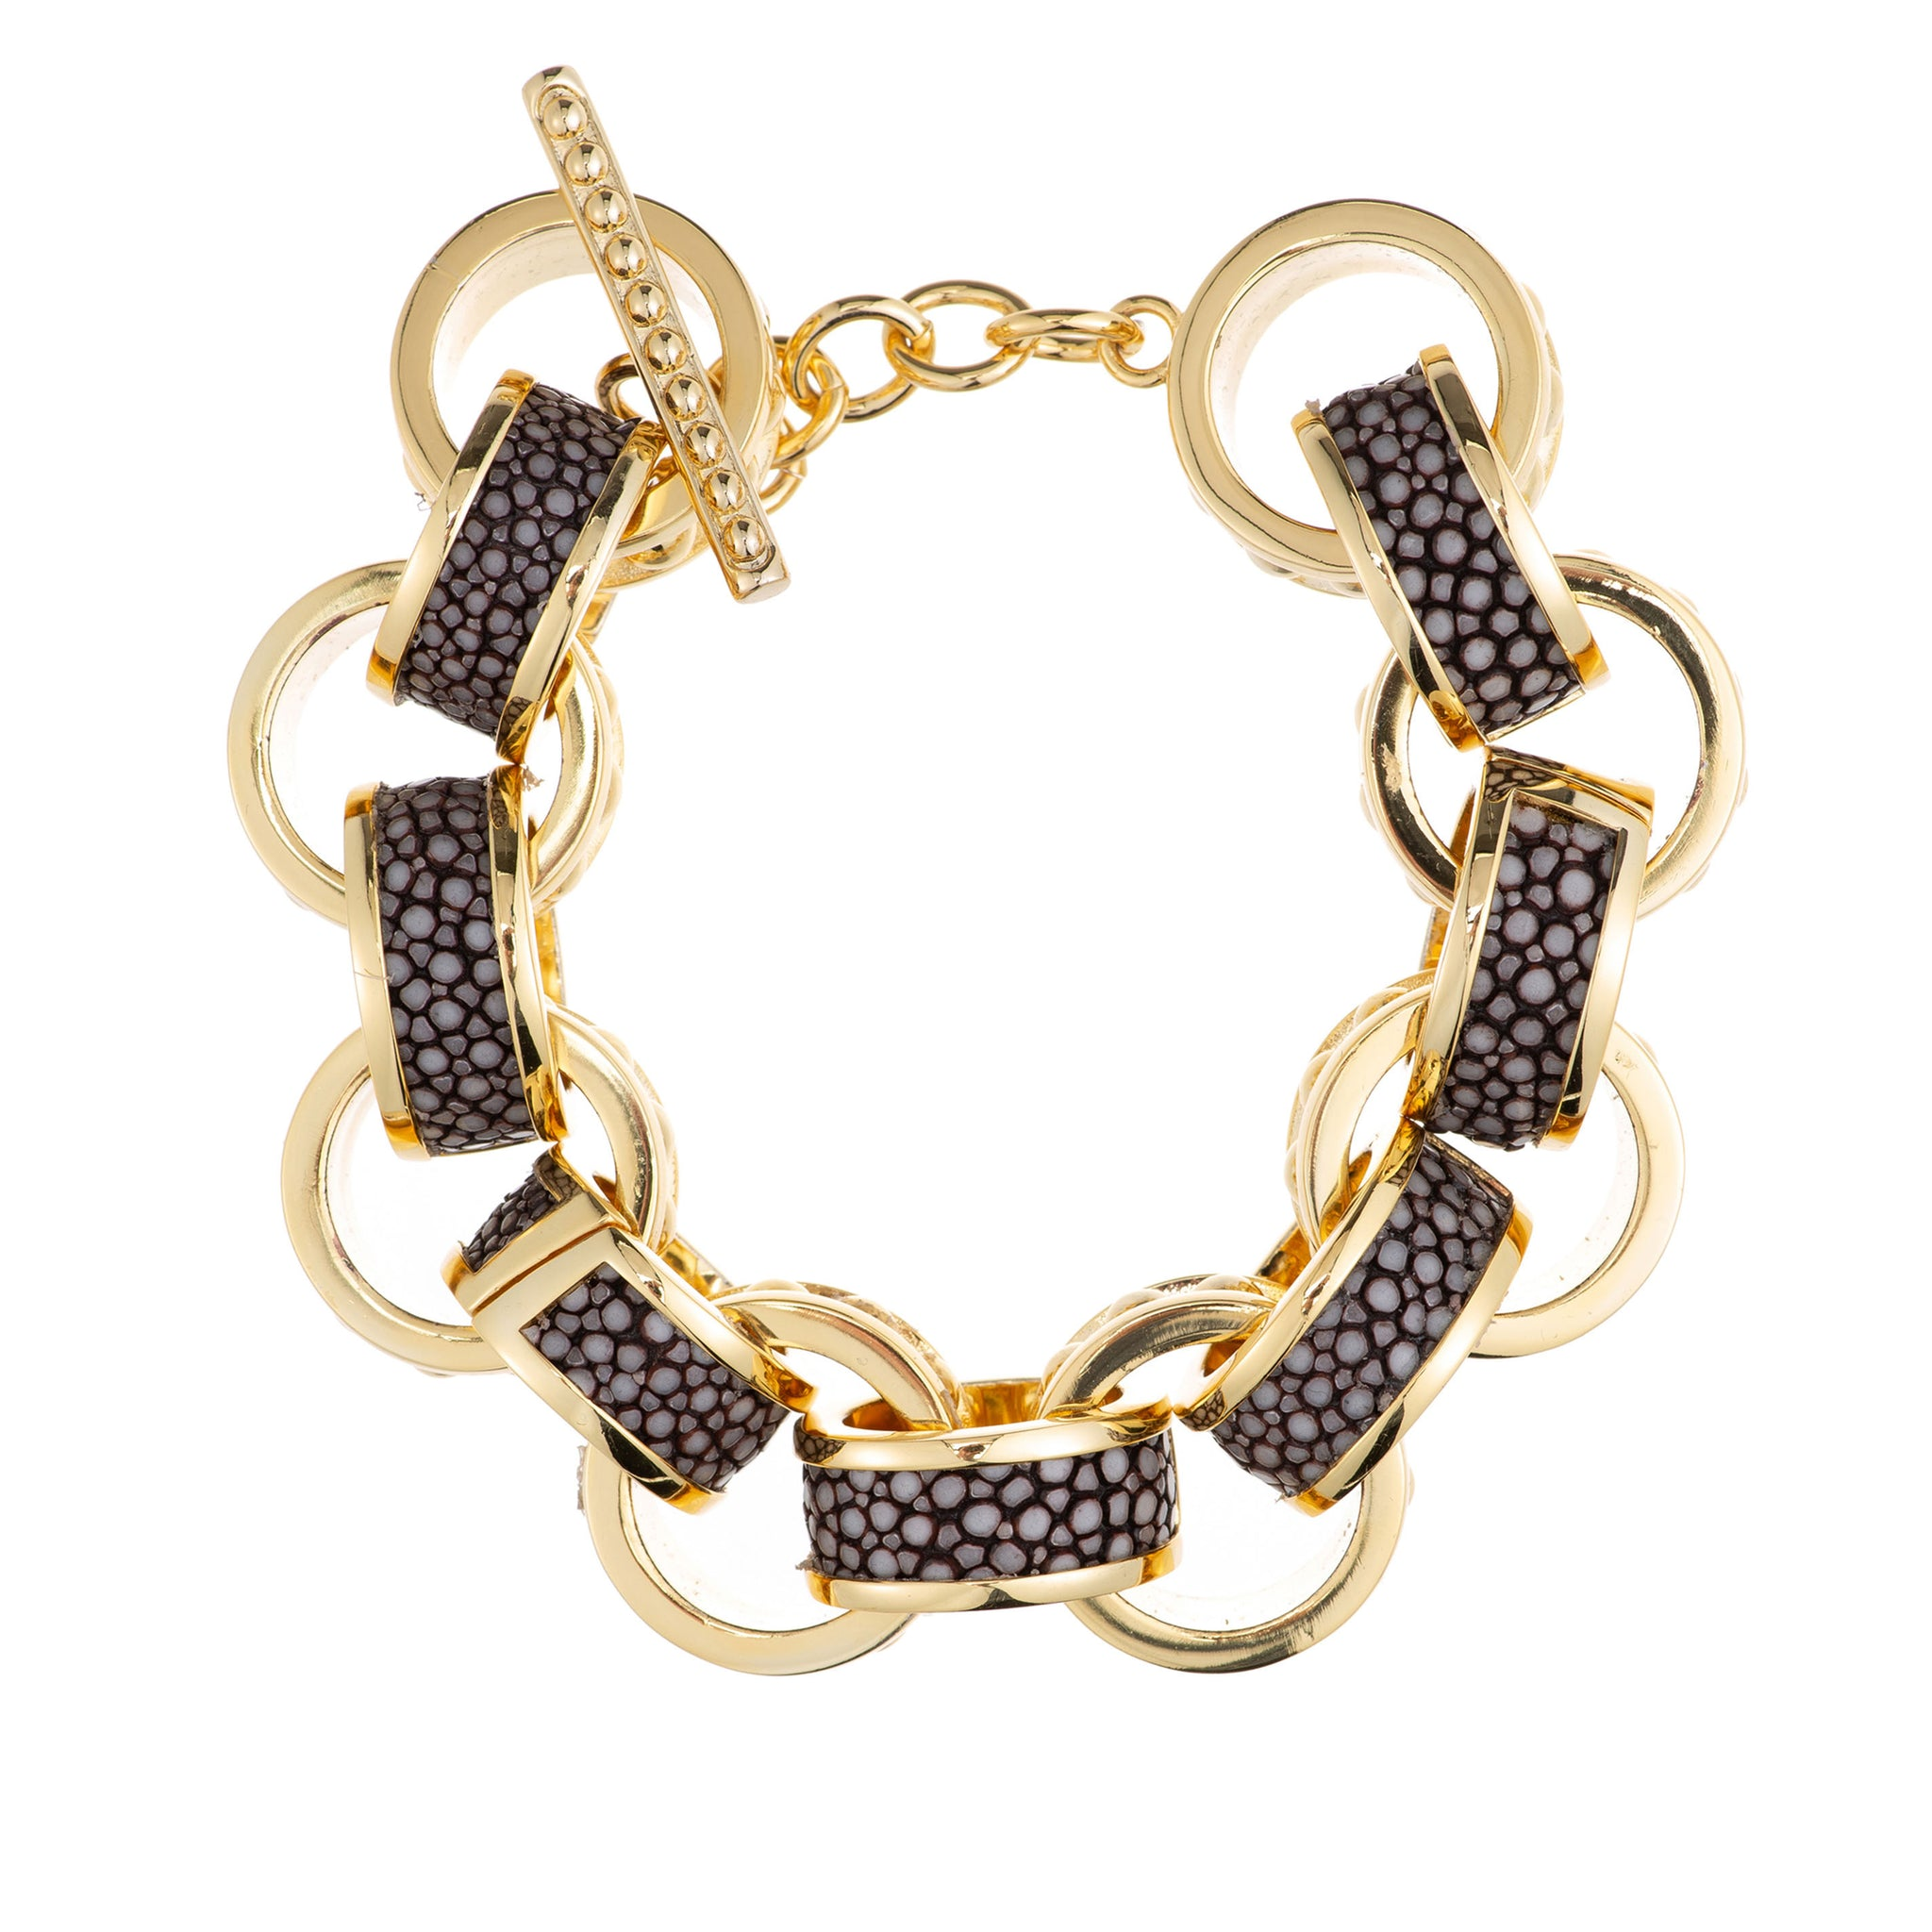 Lola Beaded Yellow Gold Link Bracelet With Shagreen Inlay